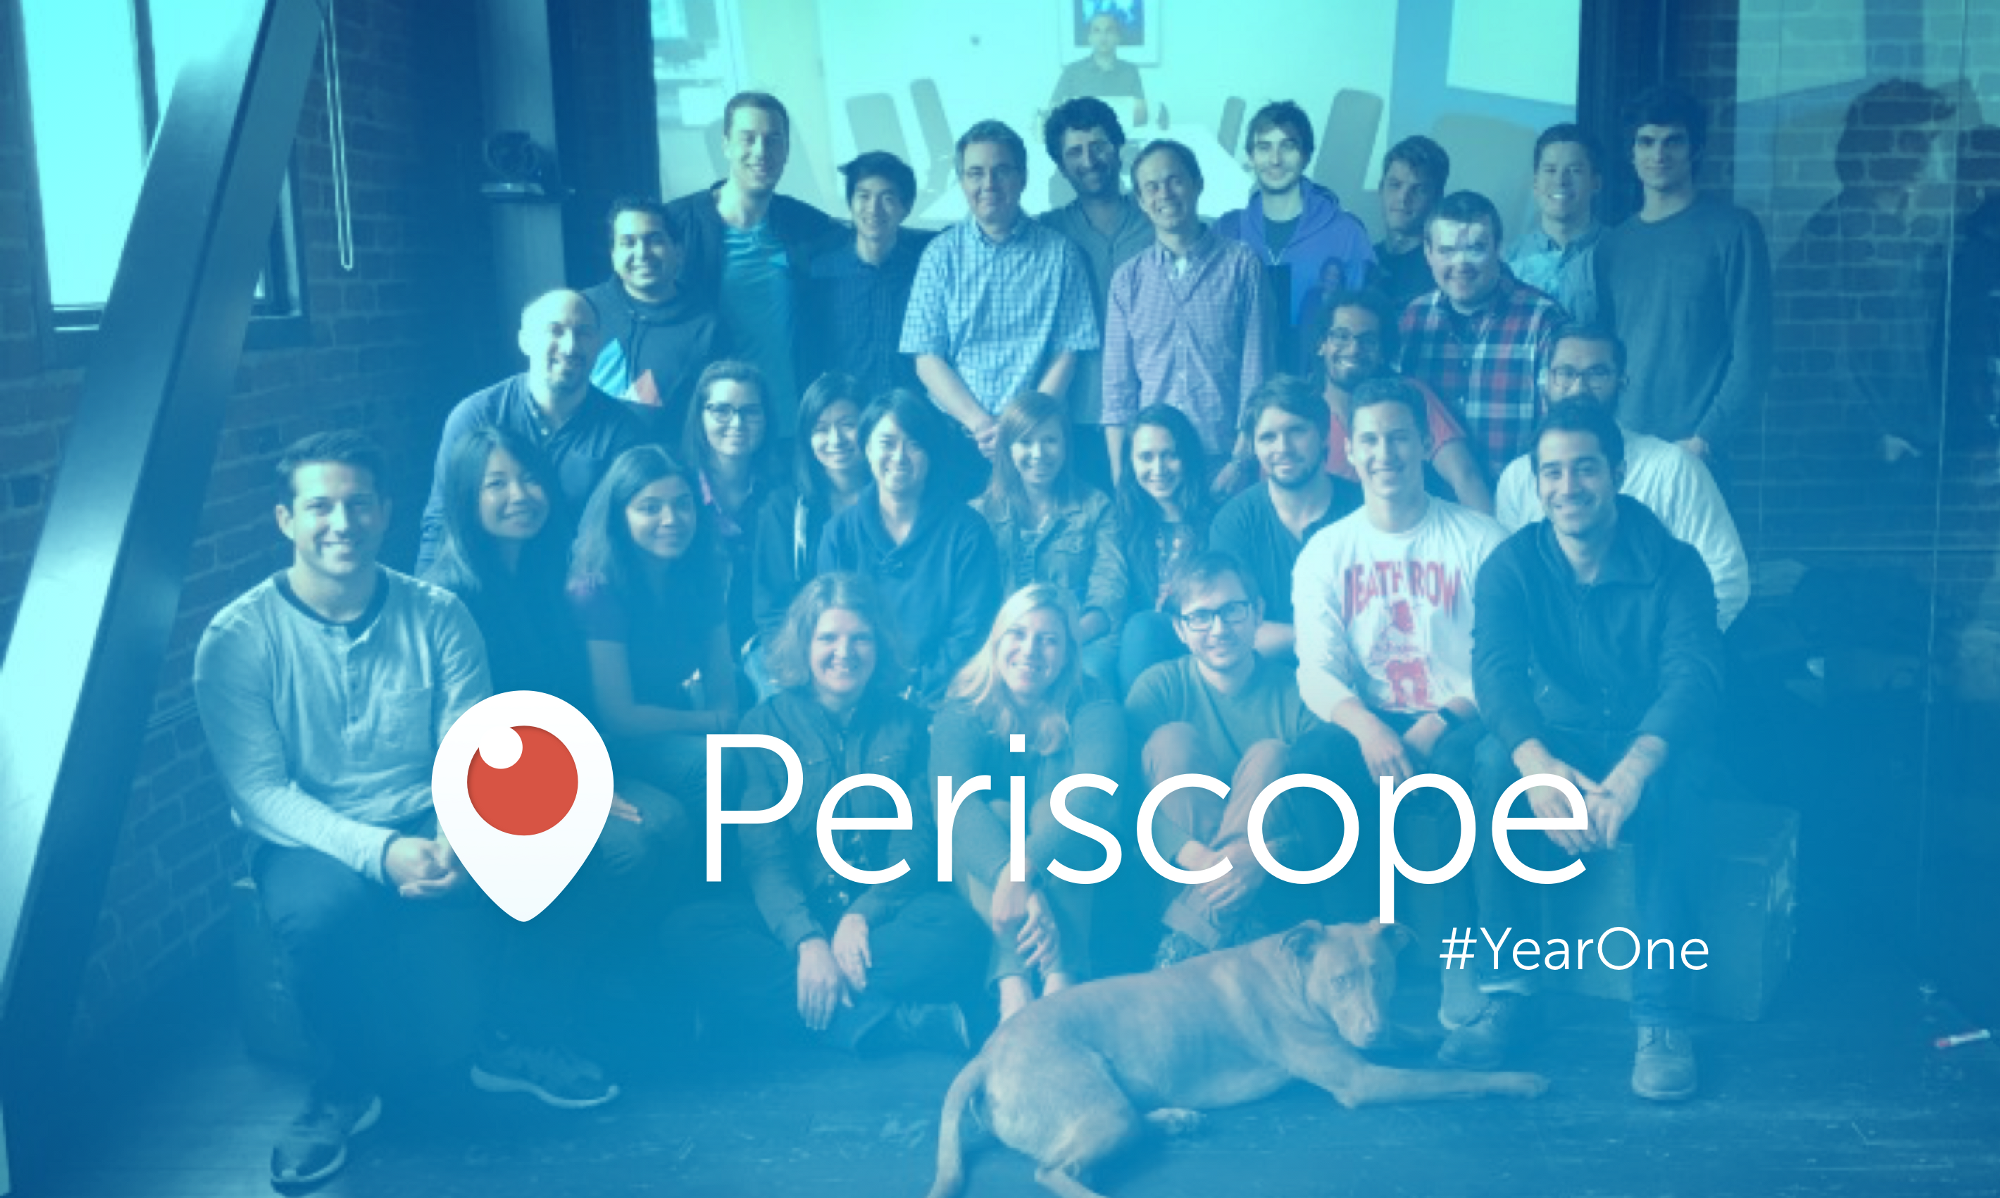 Periscope's first year is part of a livestreaming success story